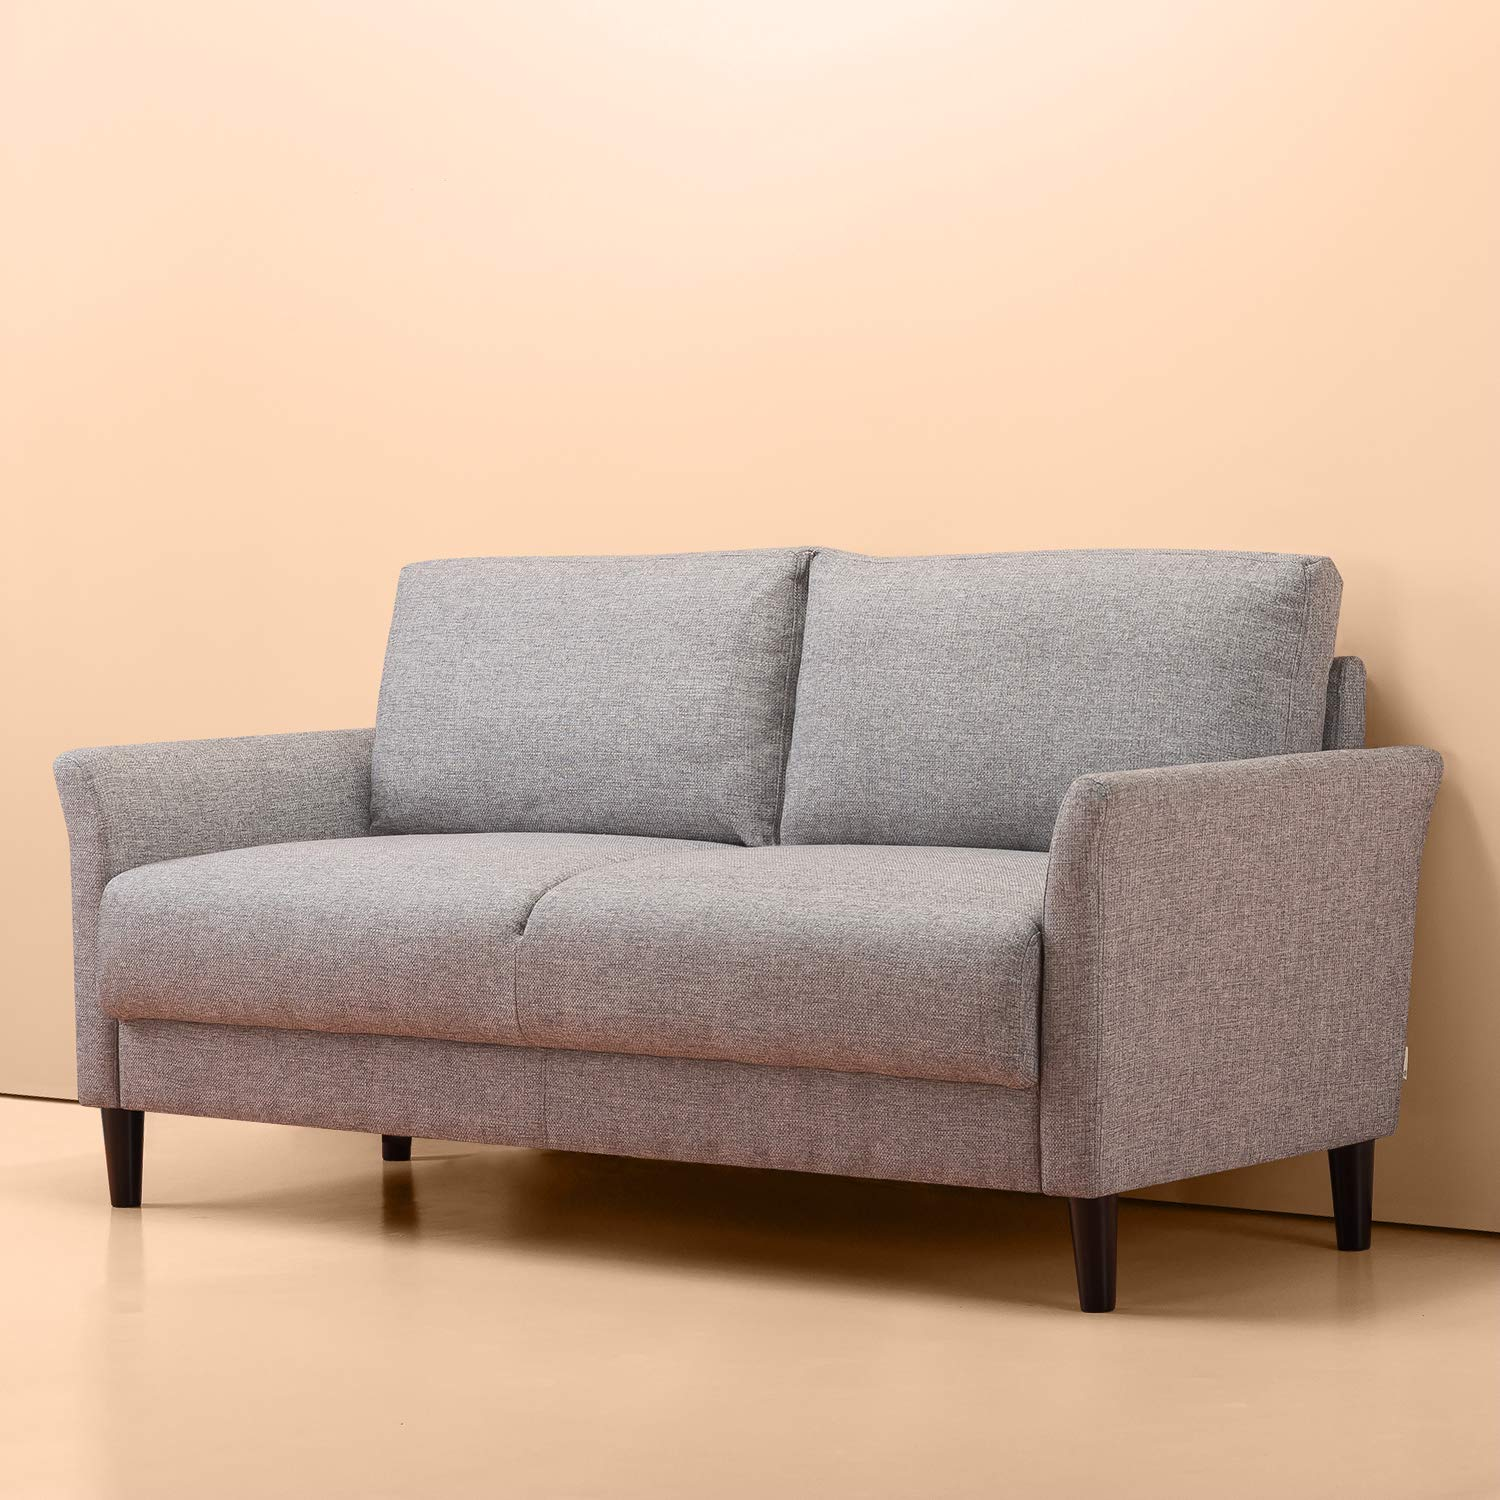 Bezaubernd Couch Ideen Von Conceptreview: Classic Upholstered 71in Sofa/living Room Couch,